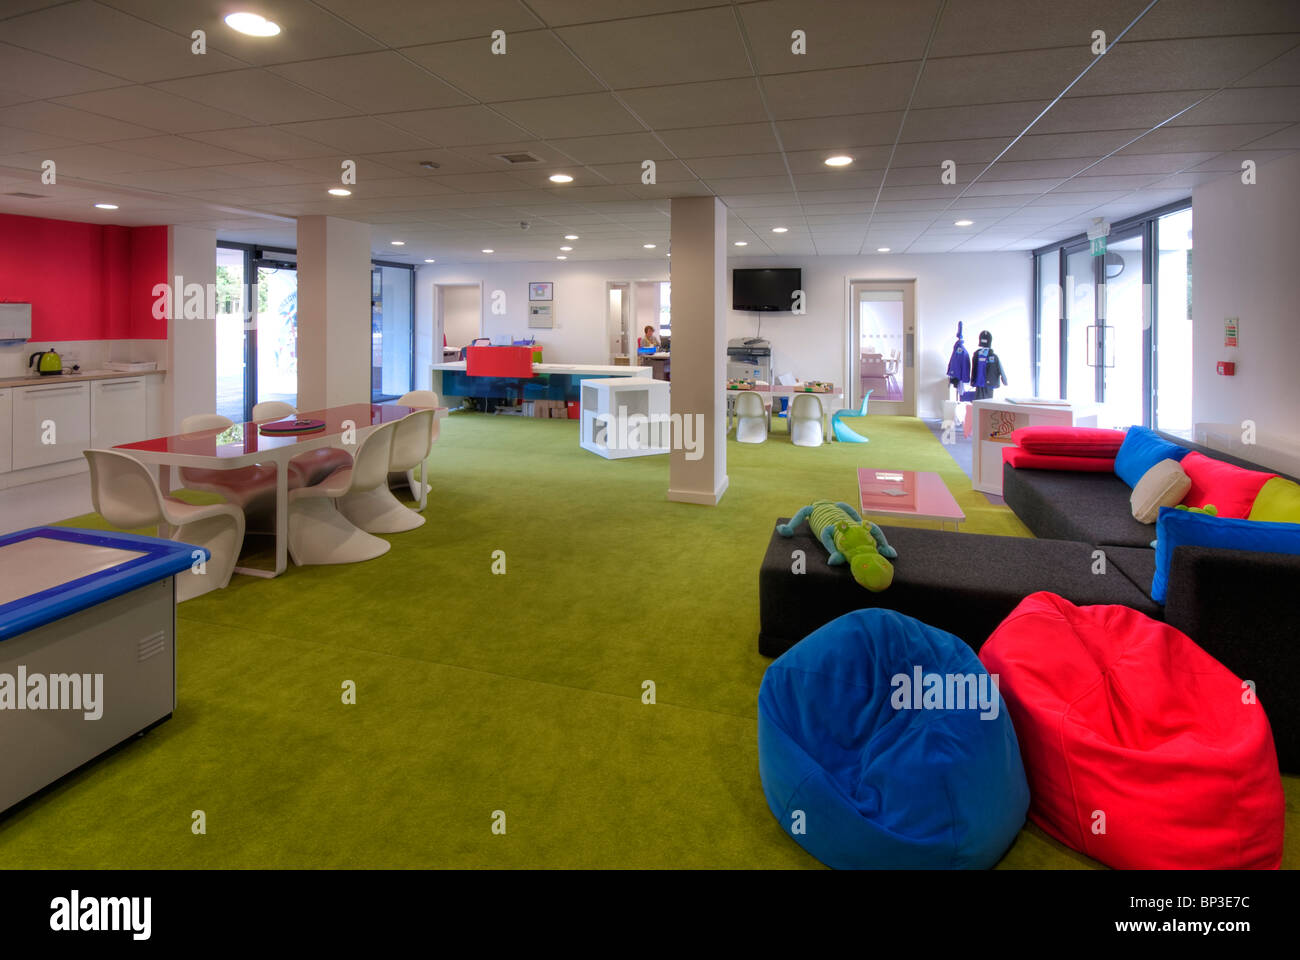 Knights Enham Infant and Junior School reception area bright and colorful with bean bags - Stock Image